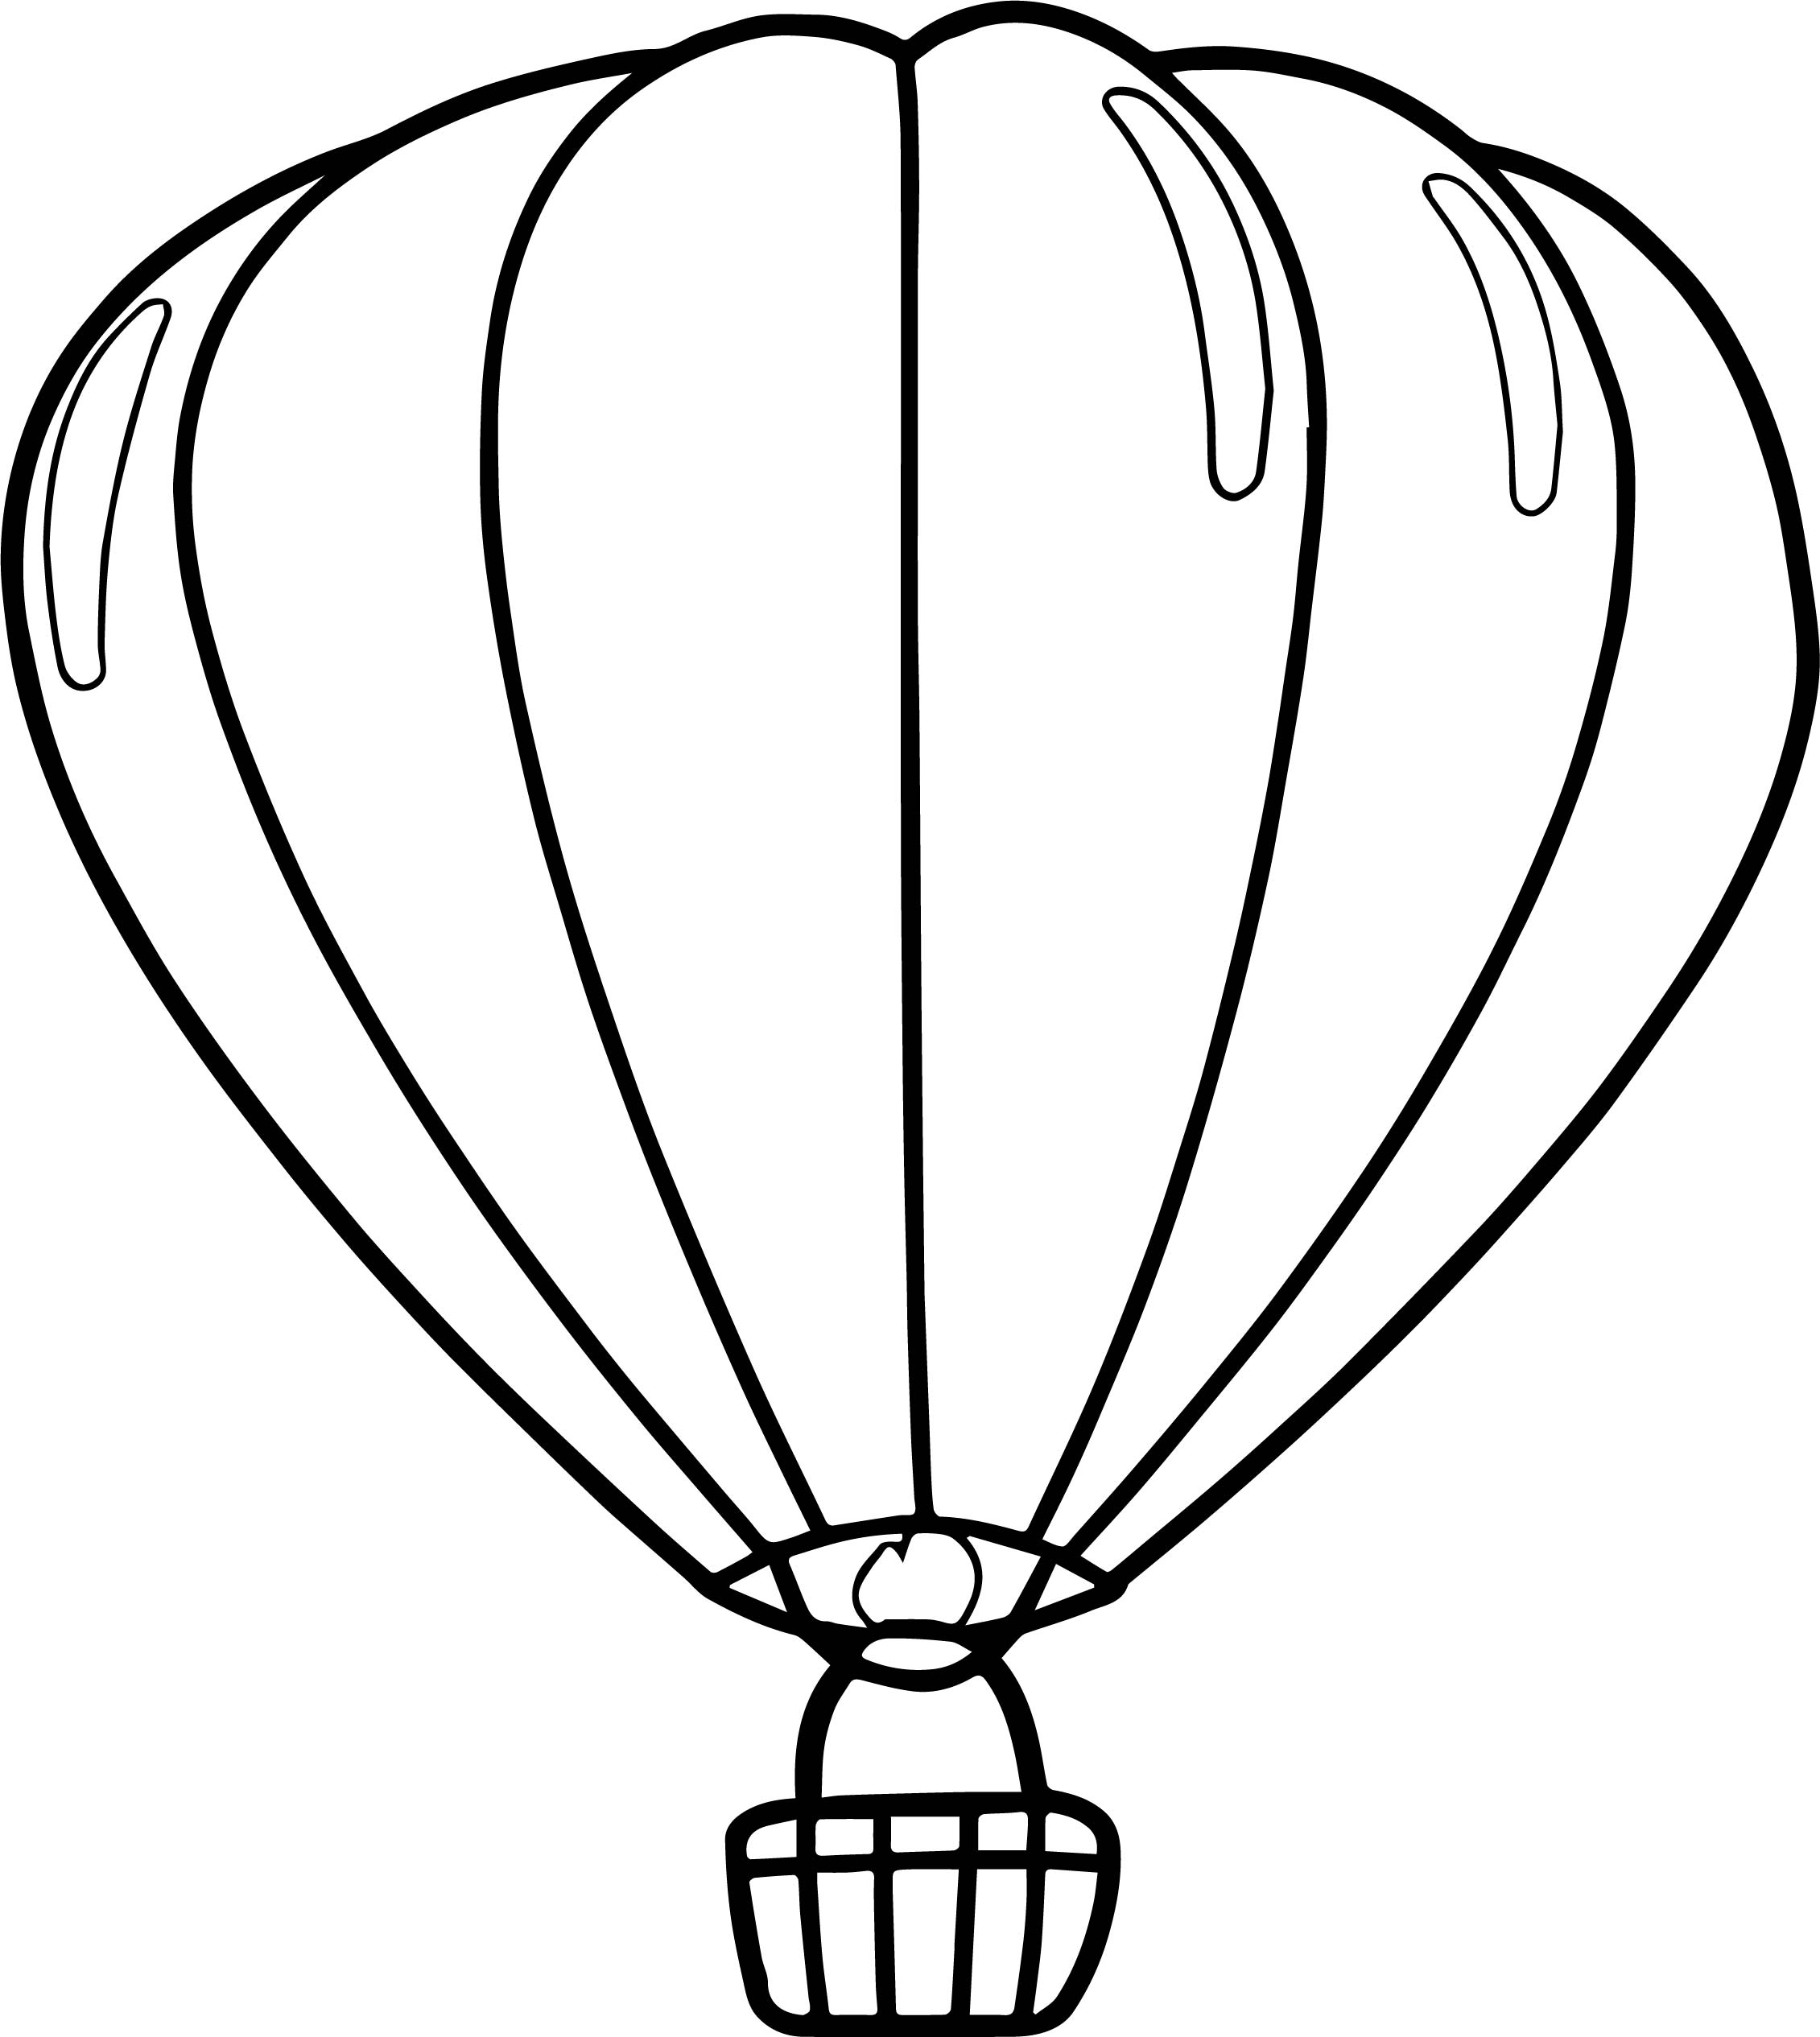 2261x2531 Hot Air Balloon Coloring Book Learn Colors Free Printable Pages